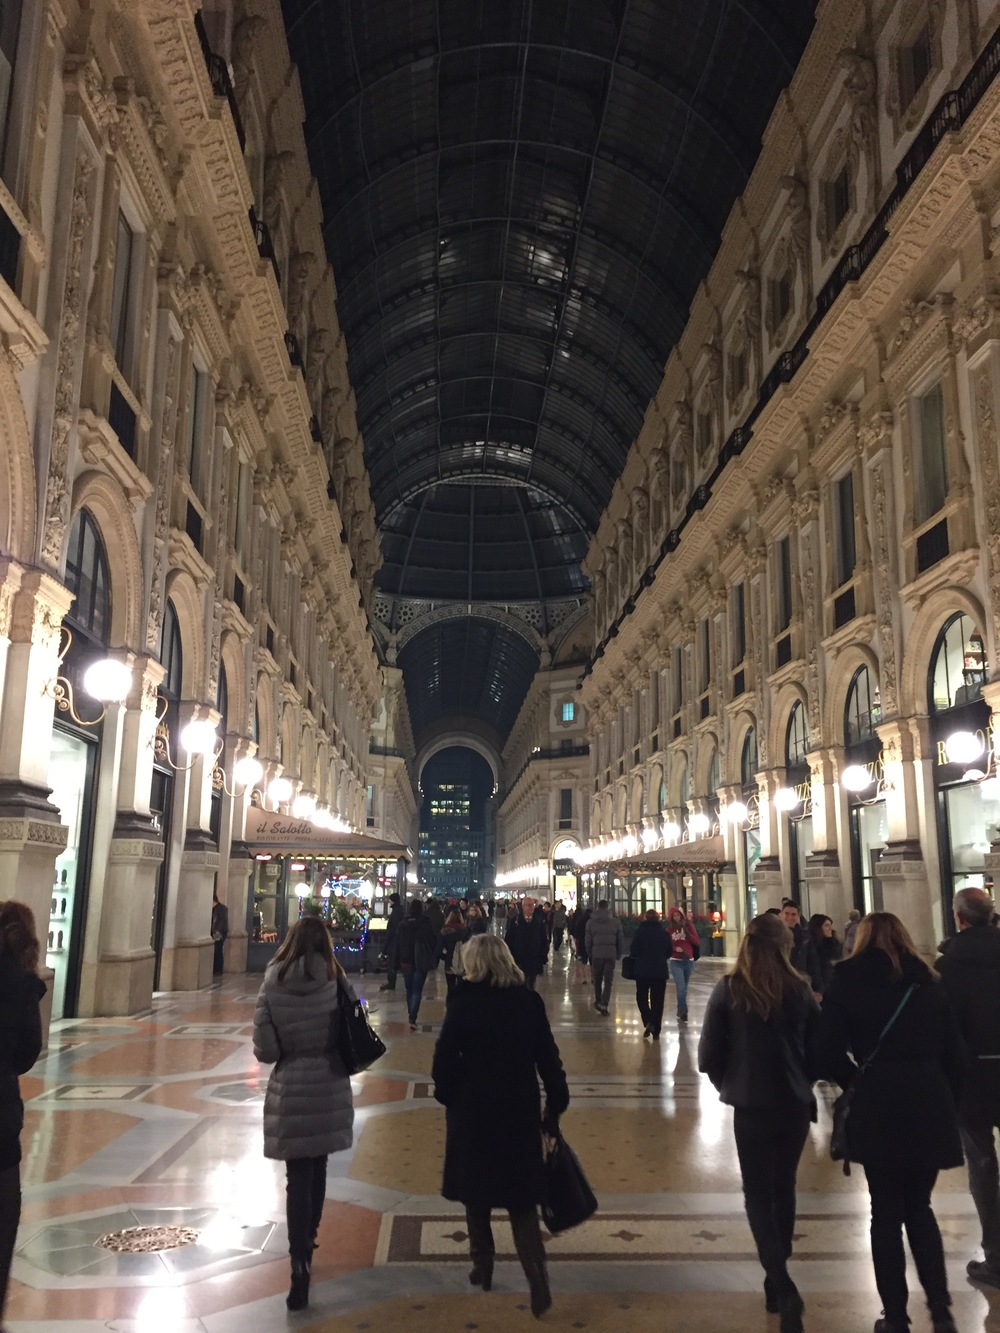 They know how to shop in Milan, the Galleria Vittorio Emanuele II.